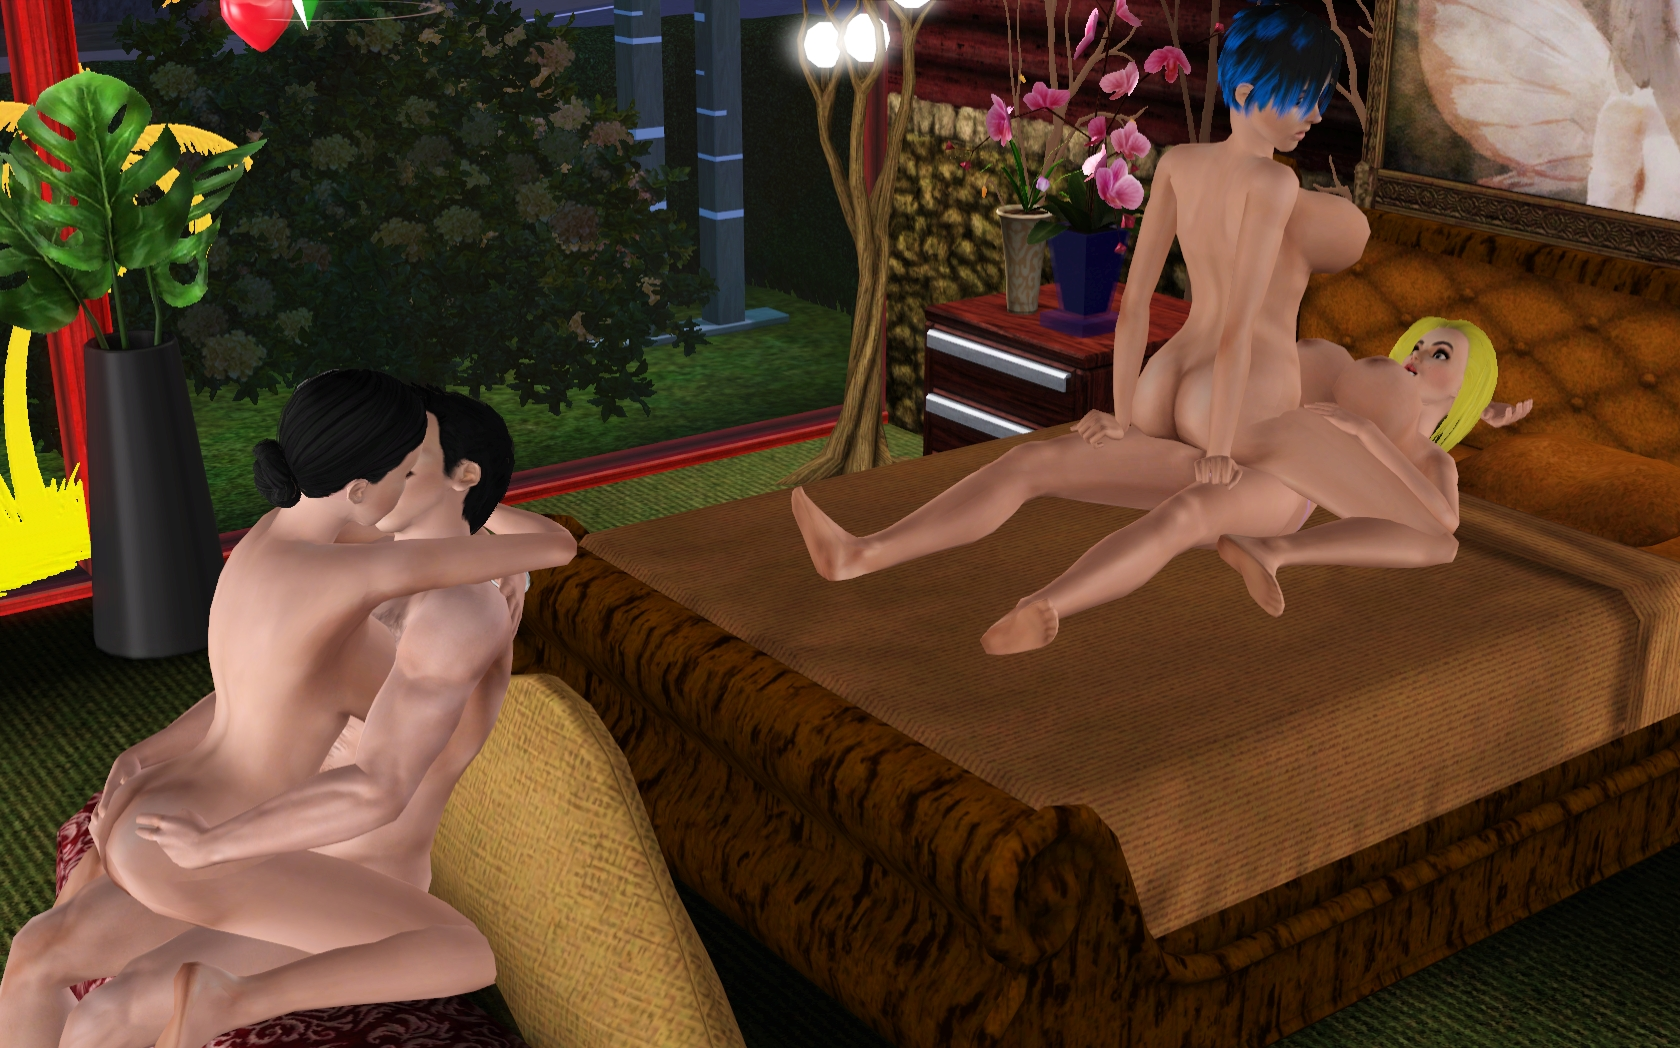 sims-nude-downloads-marilyn-chambers-banged